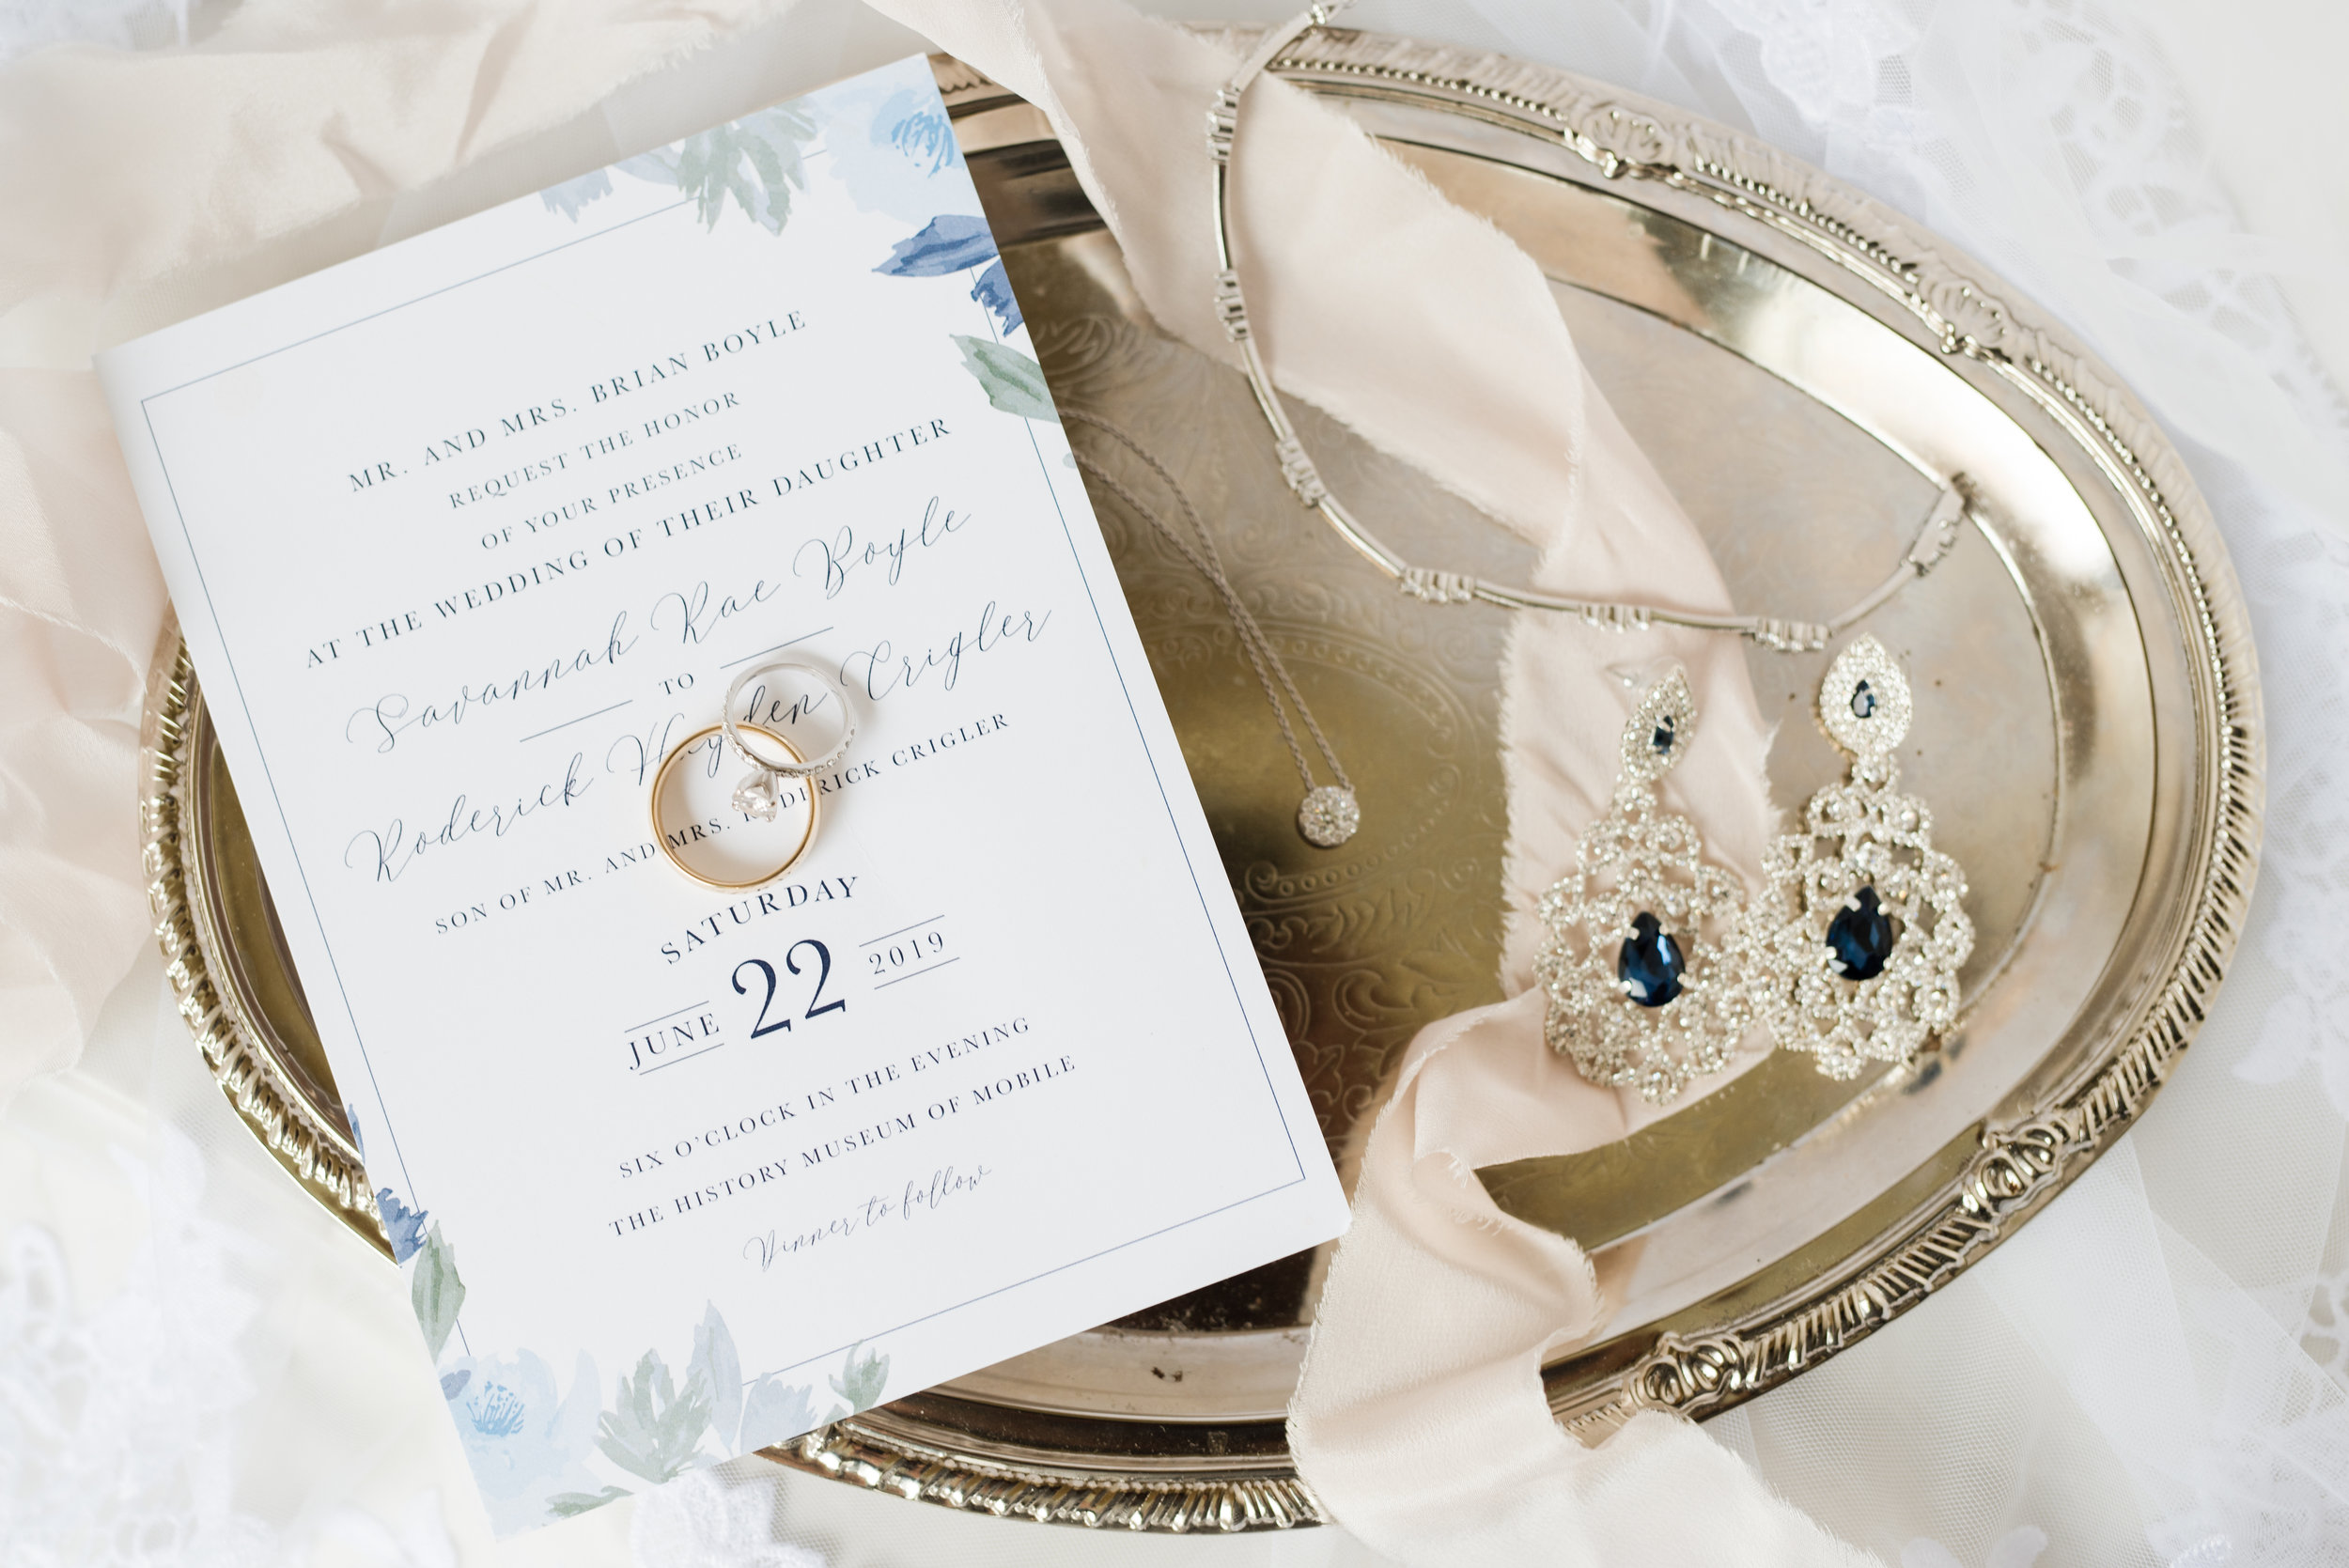 History museum of mobile, alabama wedding details / wedding rings, wedding jewelry, wedding earrings, wedding necklace, wedding bracelet, wedding stationary, wedding veil, shot by kristen marcus photography in June